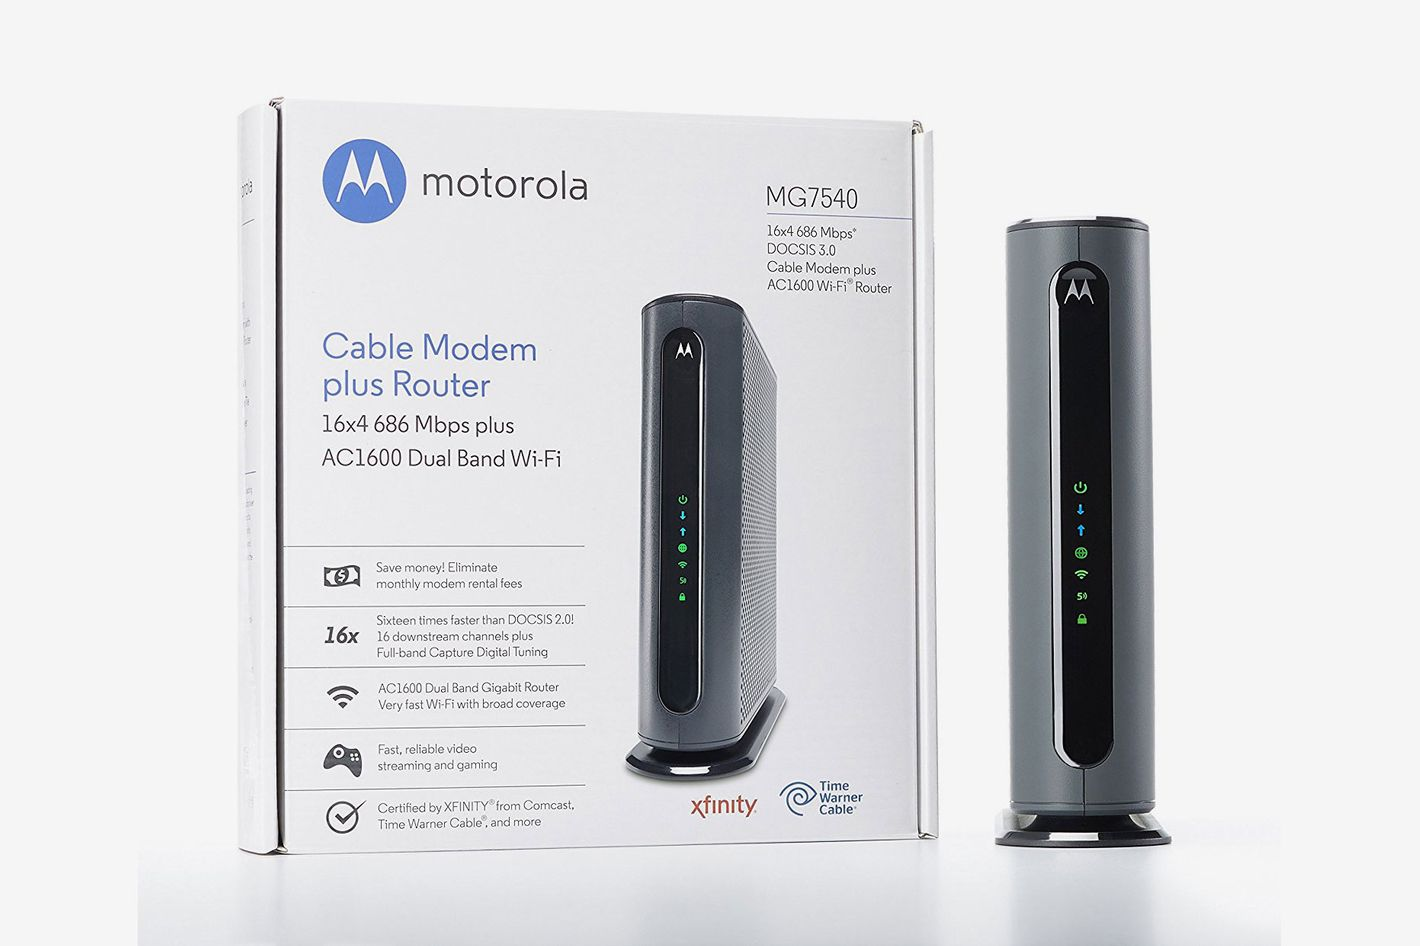 Motorola MG7540 Cable Modem Plus Dual Band Wi-Fi Gigabit Router